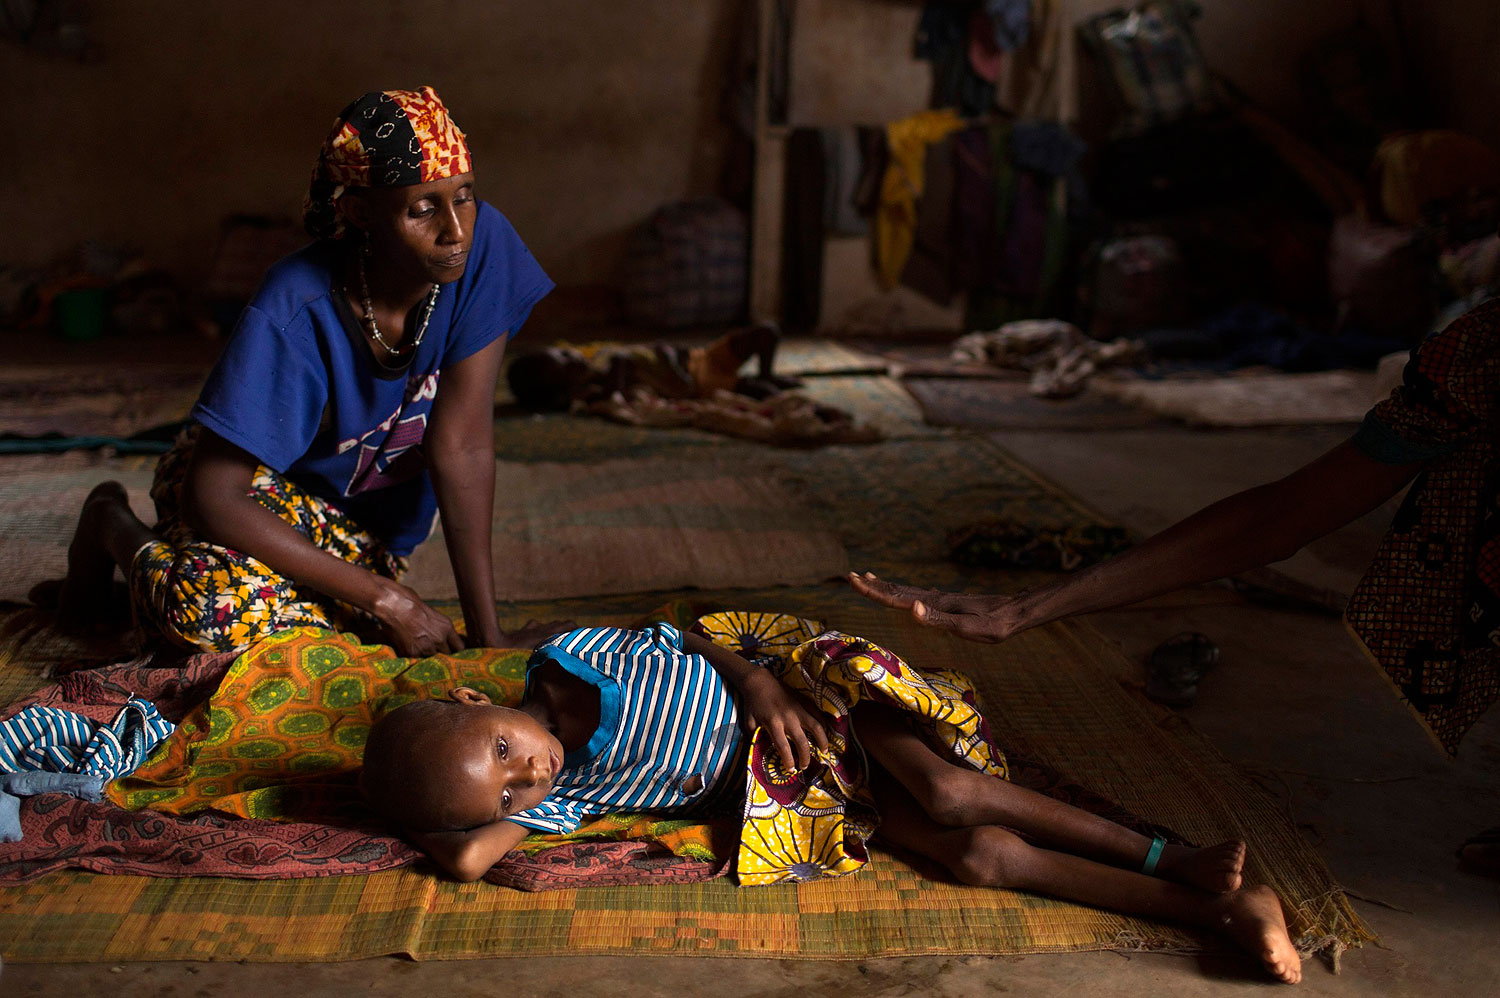 Relatives sit near Aliou Abalaye, 4, as he lies sick on the floor near Kilometre 12 (PK12), in Bangui, Central African Republic, where internally displaced Muslims are stranded due to the ongoing sectarian violence, on March 6, 2014.